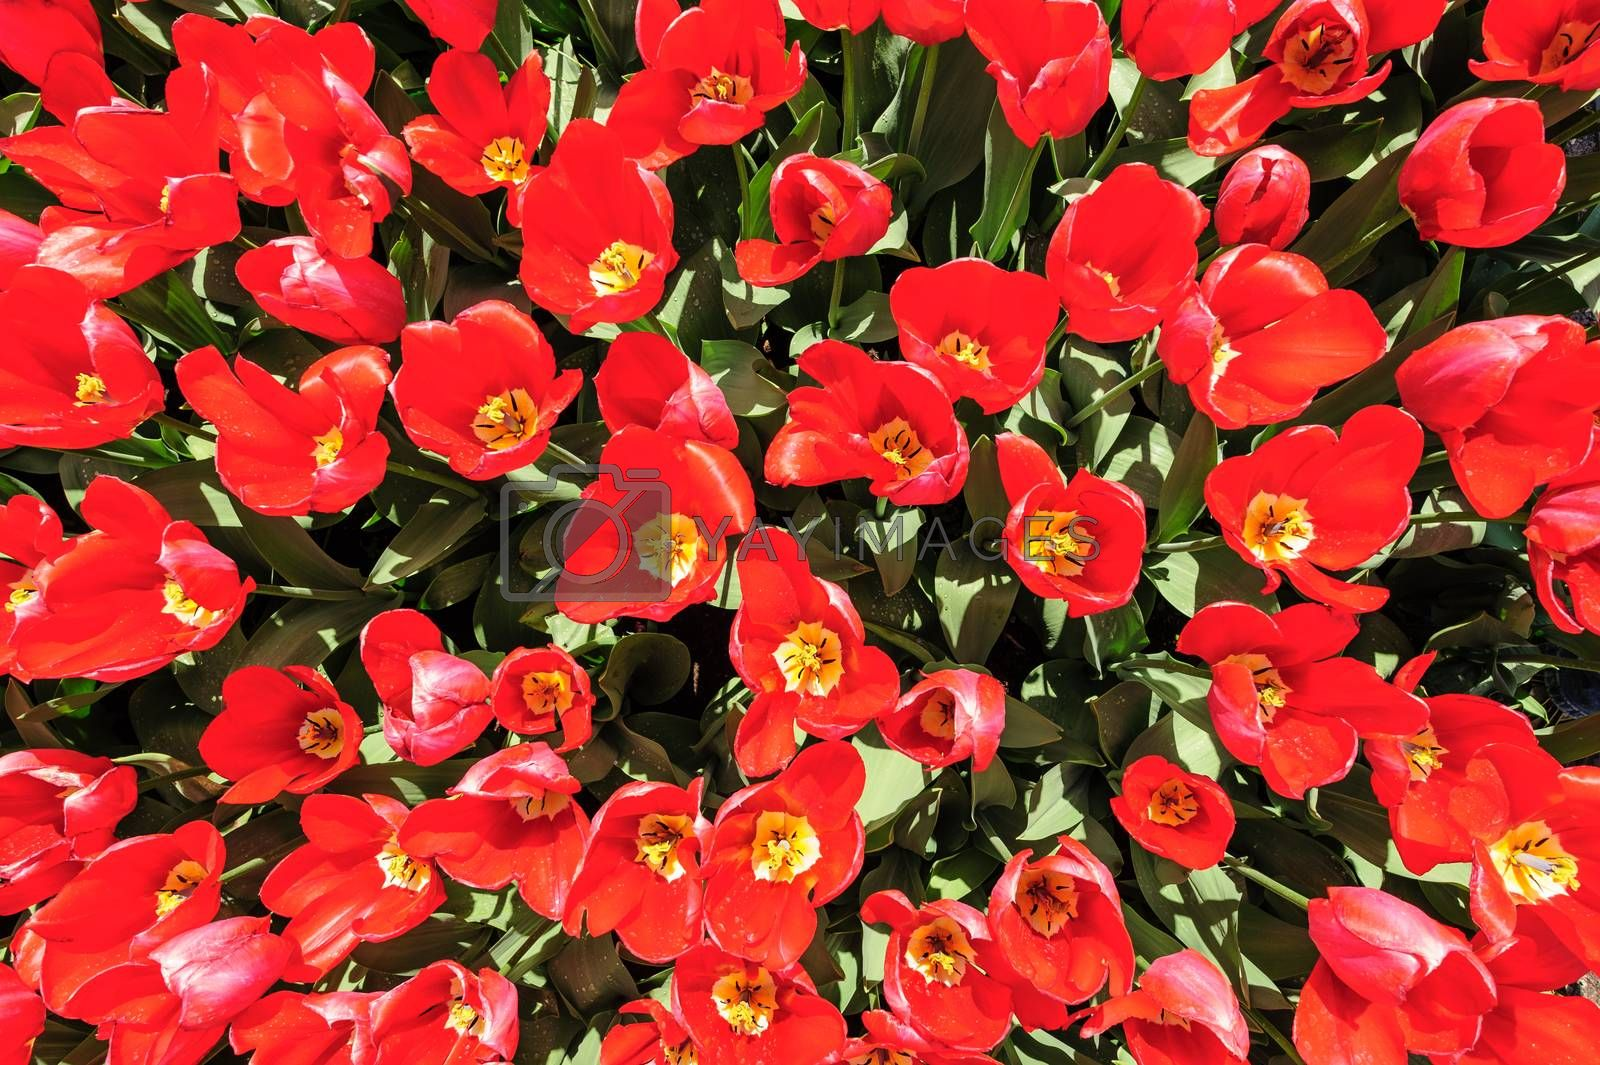 Bright red tulips flowerbed shot from above, Keukenhof Gardens in Lisse, Netherlands. Good as background or wallpaper.